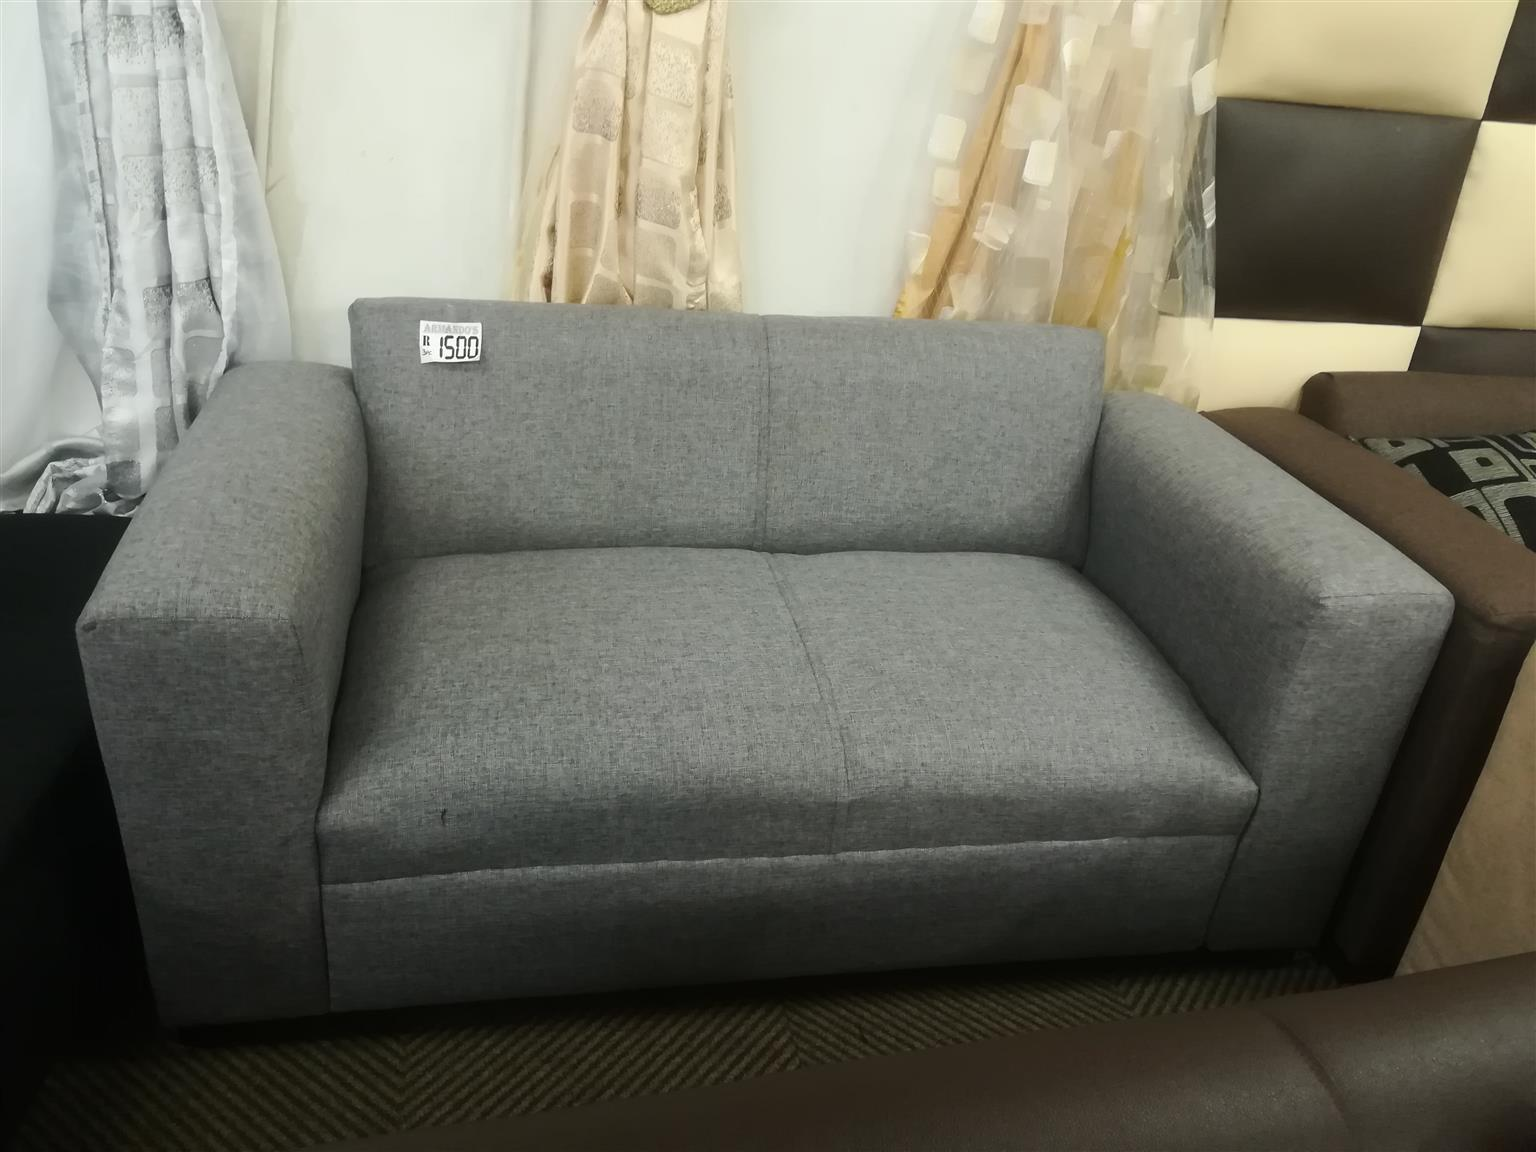 New grey fabric couch